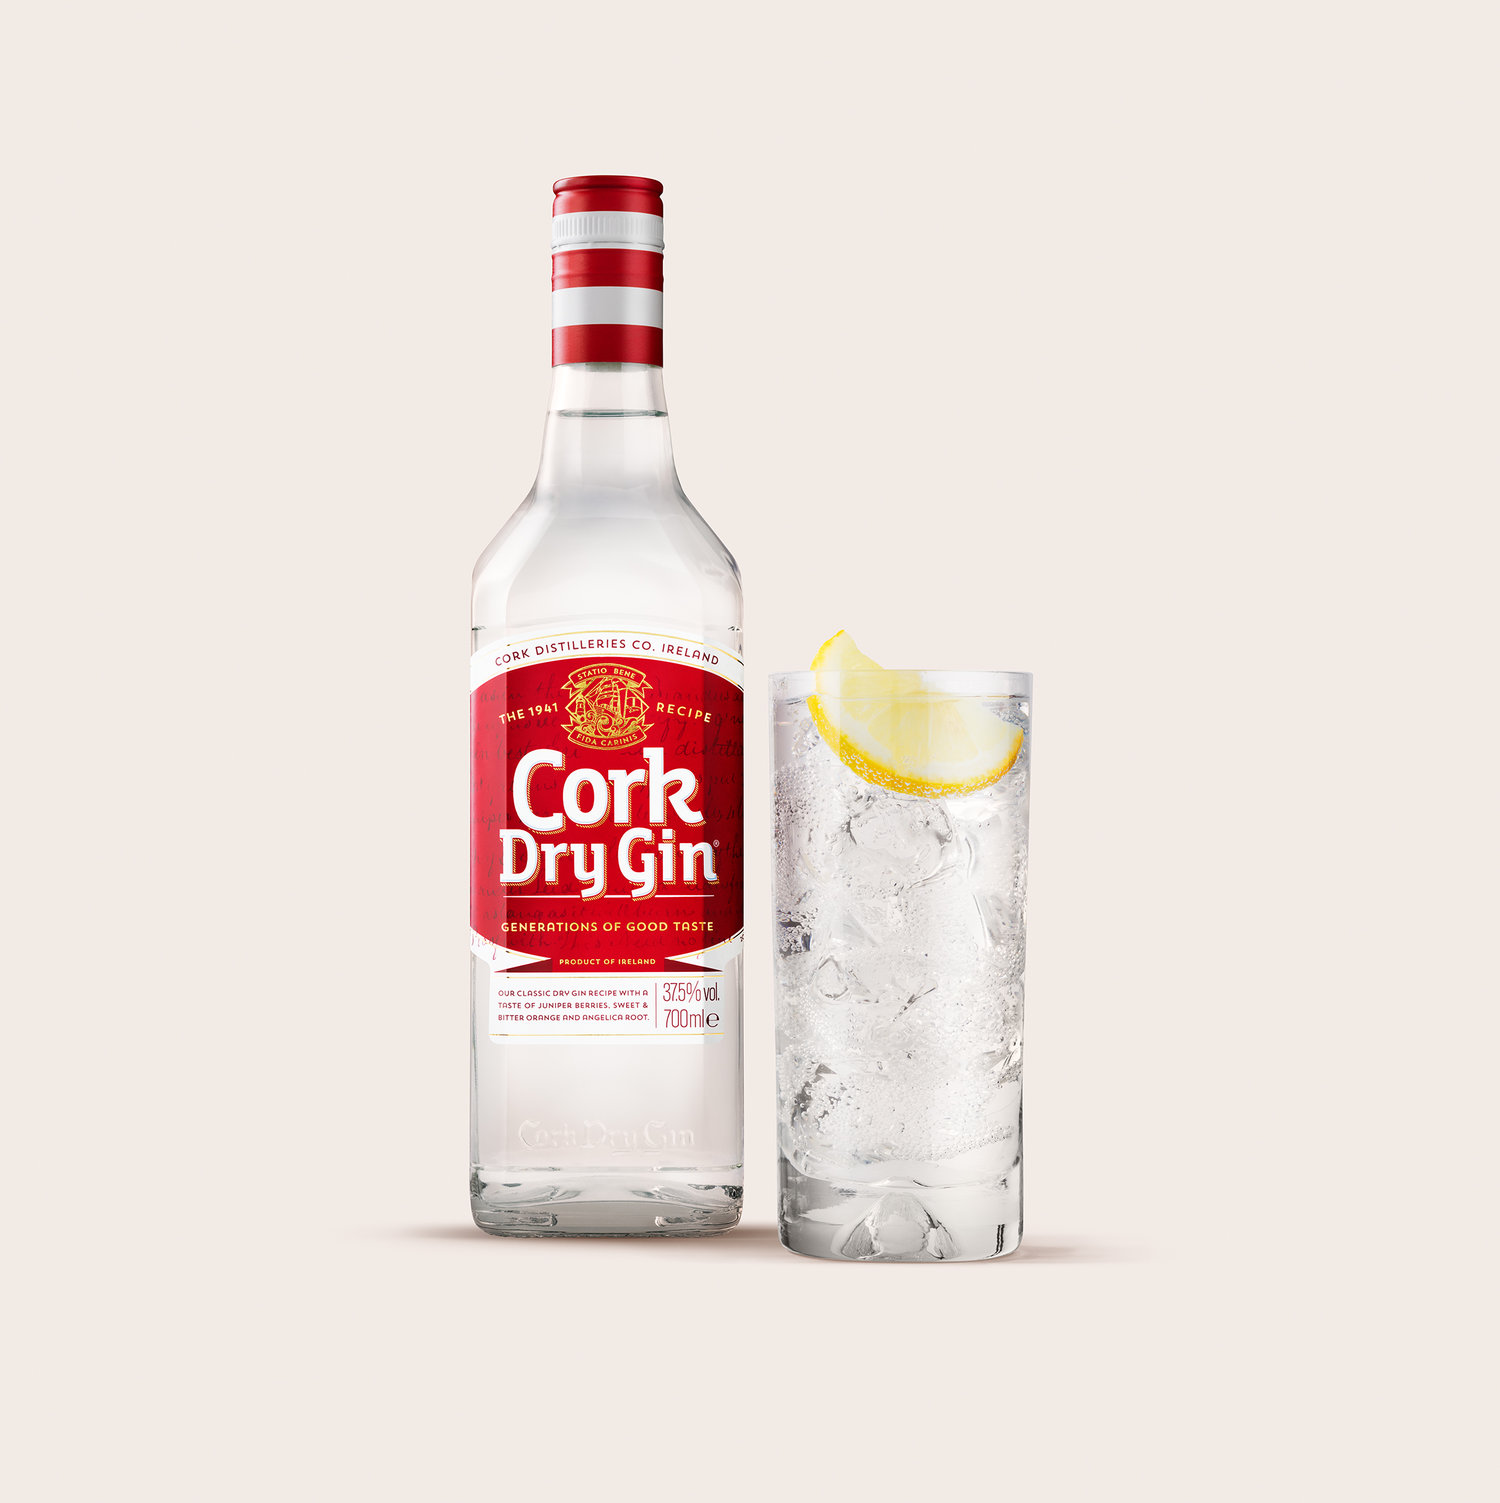 Cork_Dry_Gin_Bottle-Drink.jpg